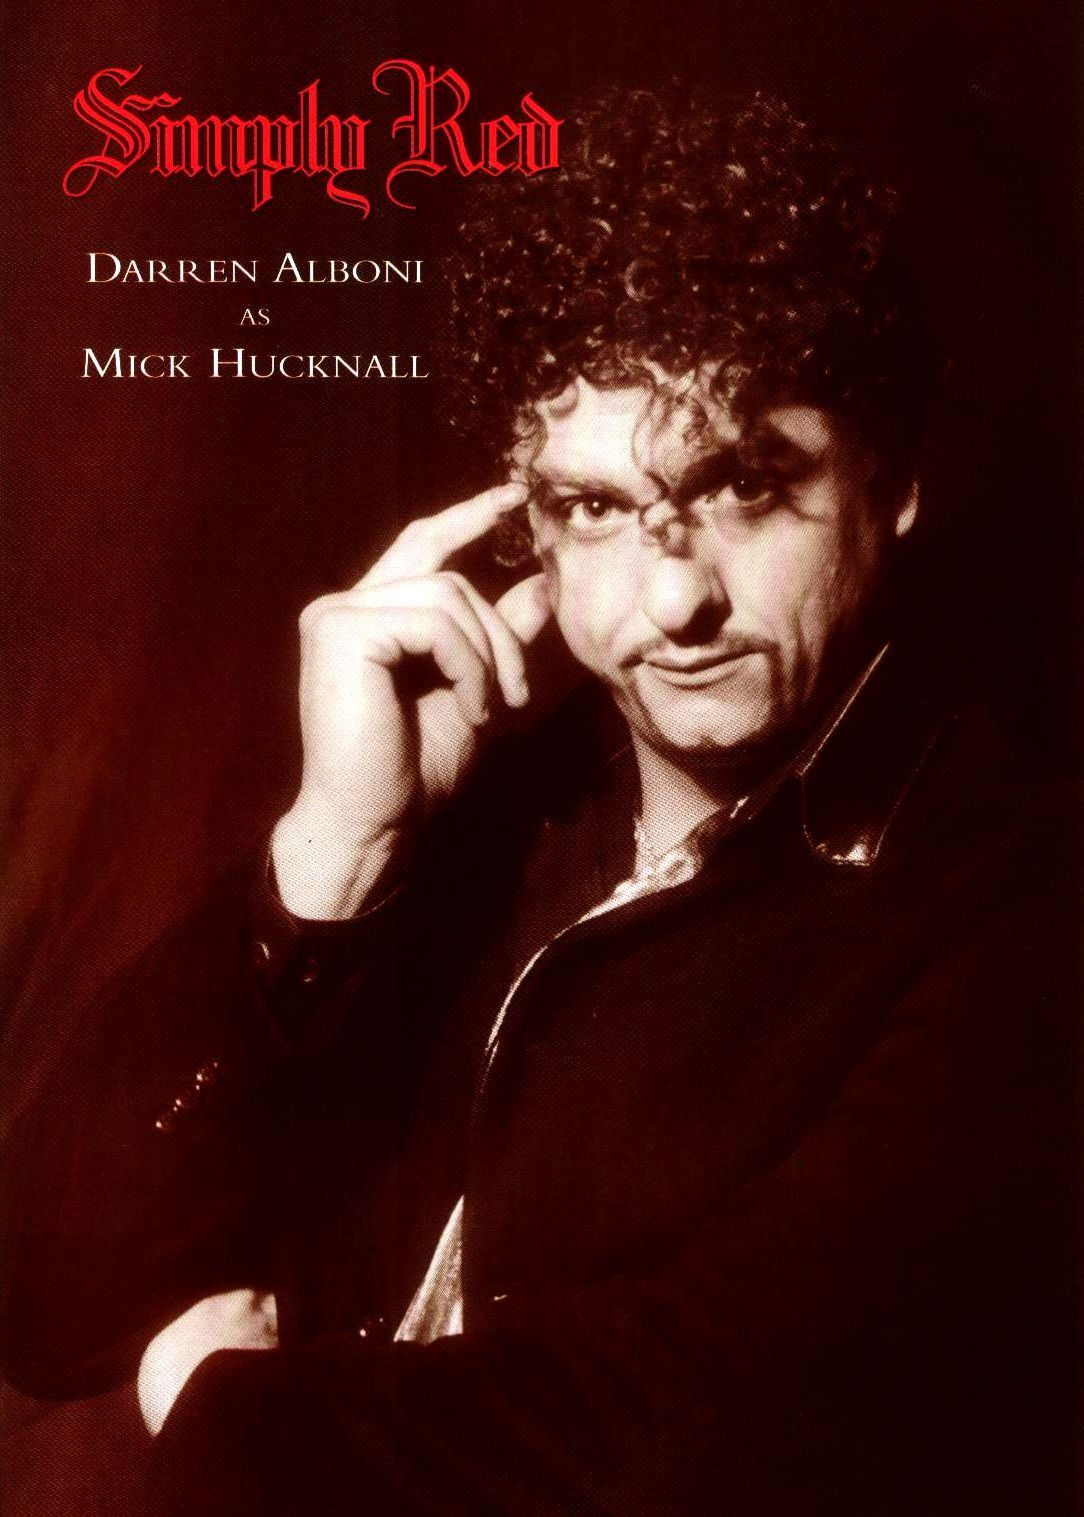 Darren Alboni as Mick Hucknall Simply Red